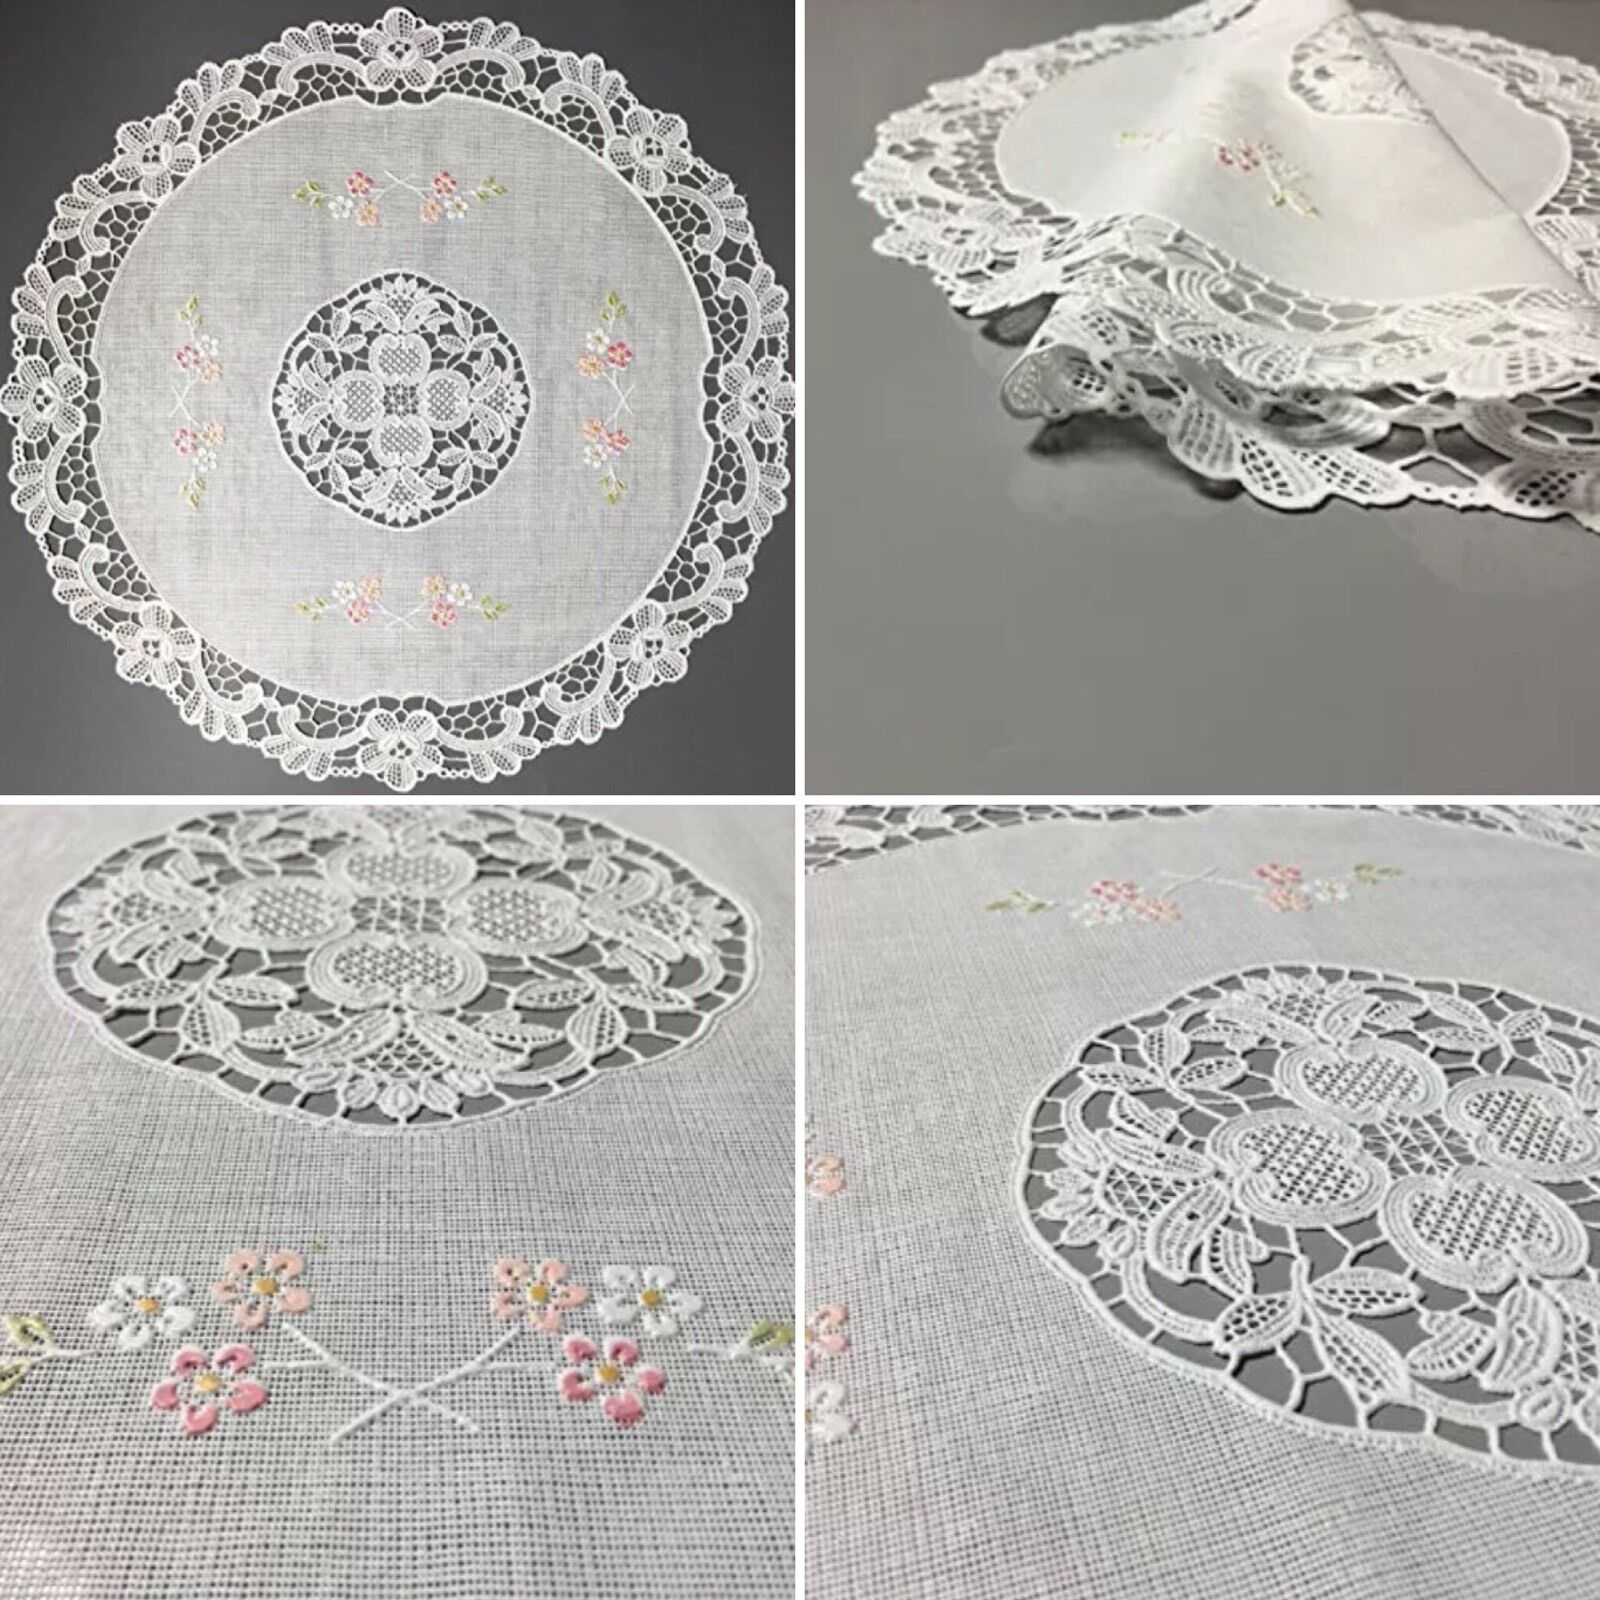 vinyl lace placemats four plastic white floral 4 round set christmas gift 1 of 4only 5 available vinyl lace placemats